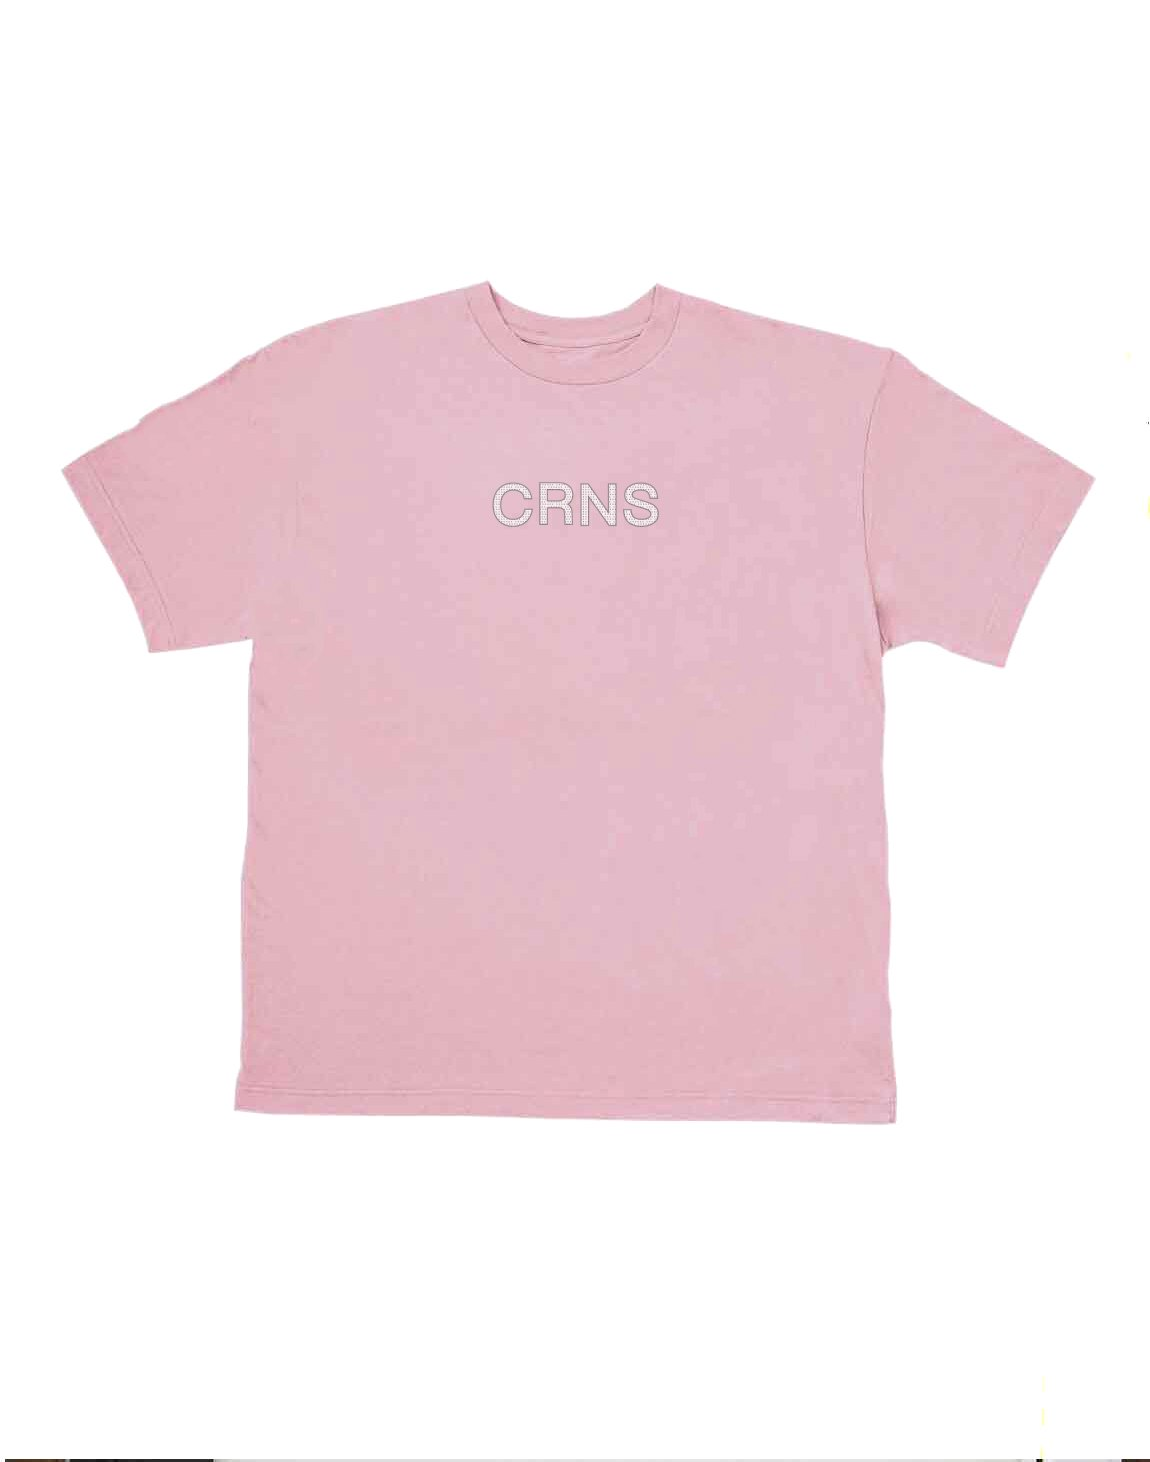 <img class='new_mark_img1' src='https://img.shop-pro.jp/img/new/icons1.gif' style='border:none;display:inline;margin:0px;padding:0px;width:auto;' />CRNS DOT LOGO OVERSIZE T-SHIRTS【PINK】